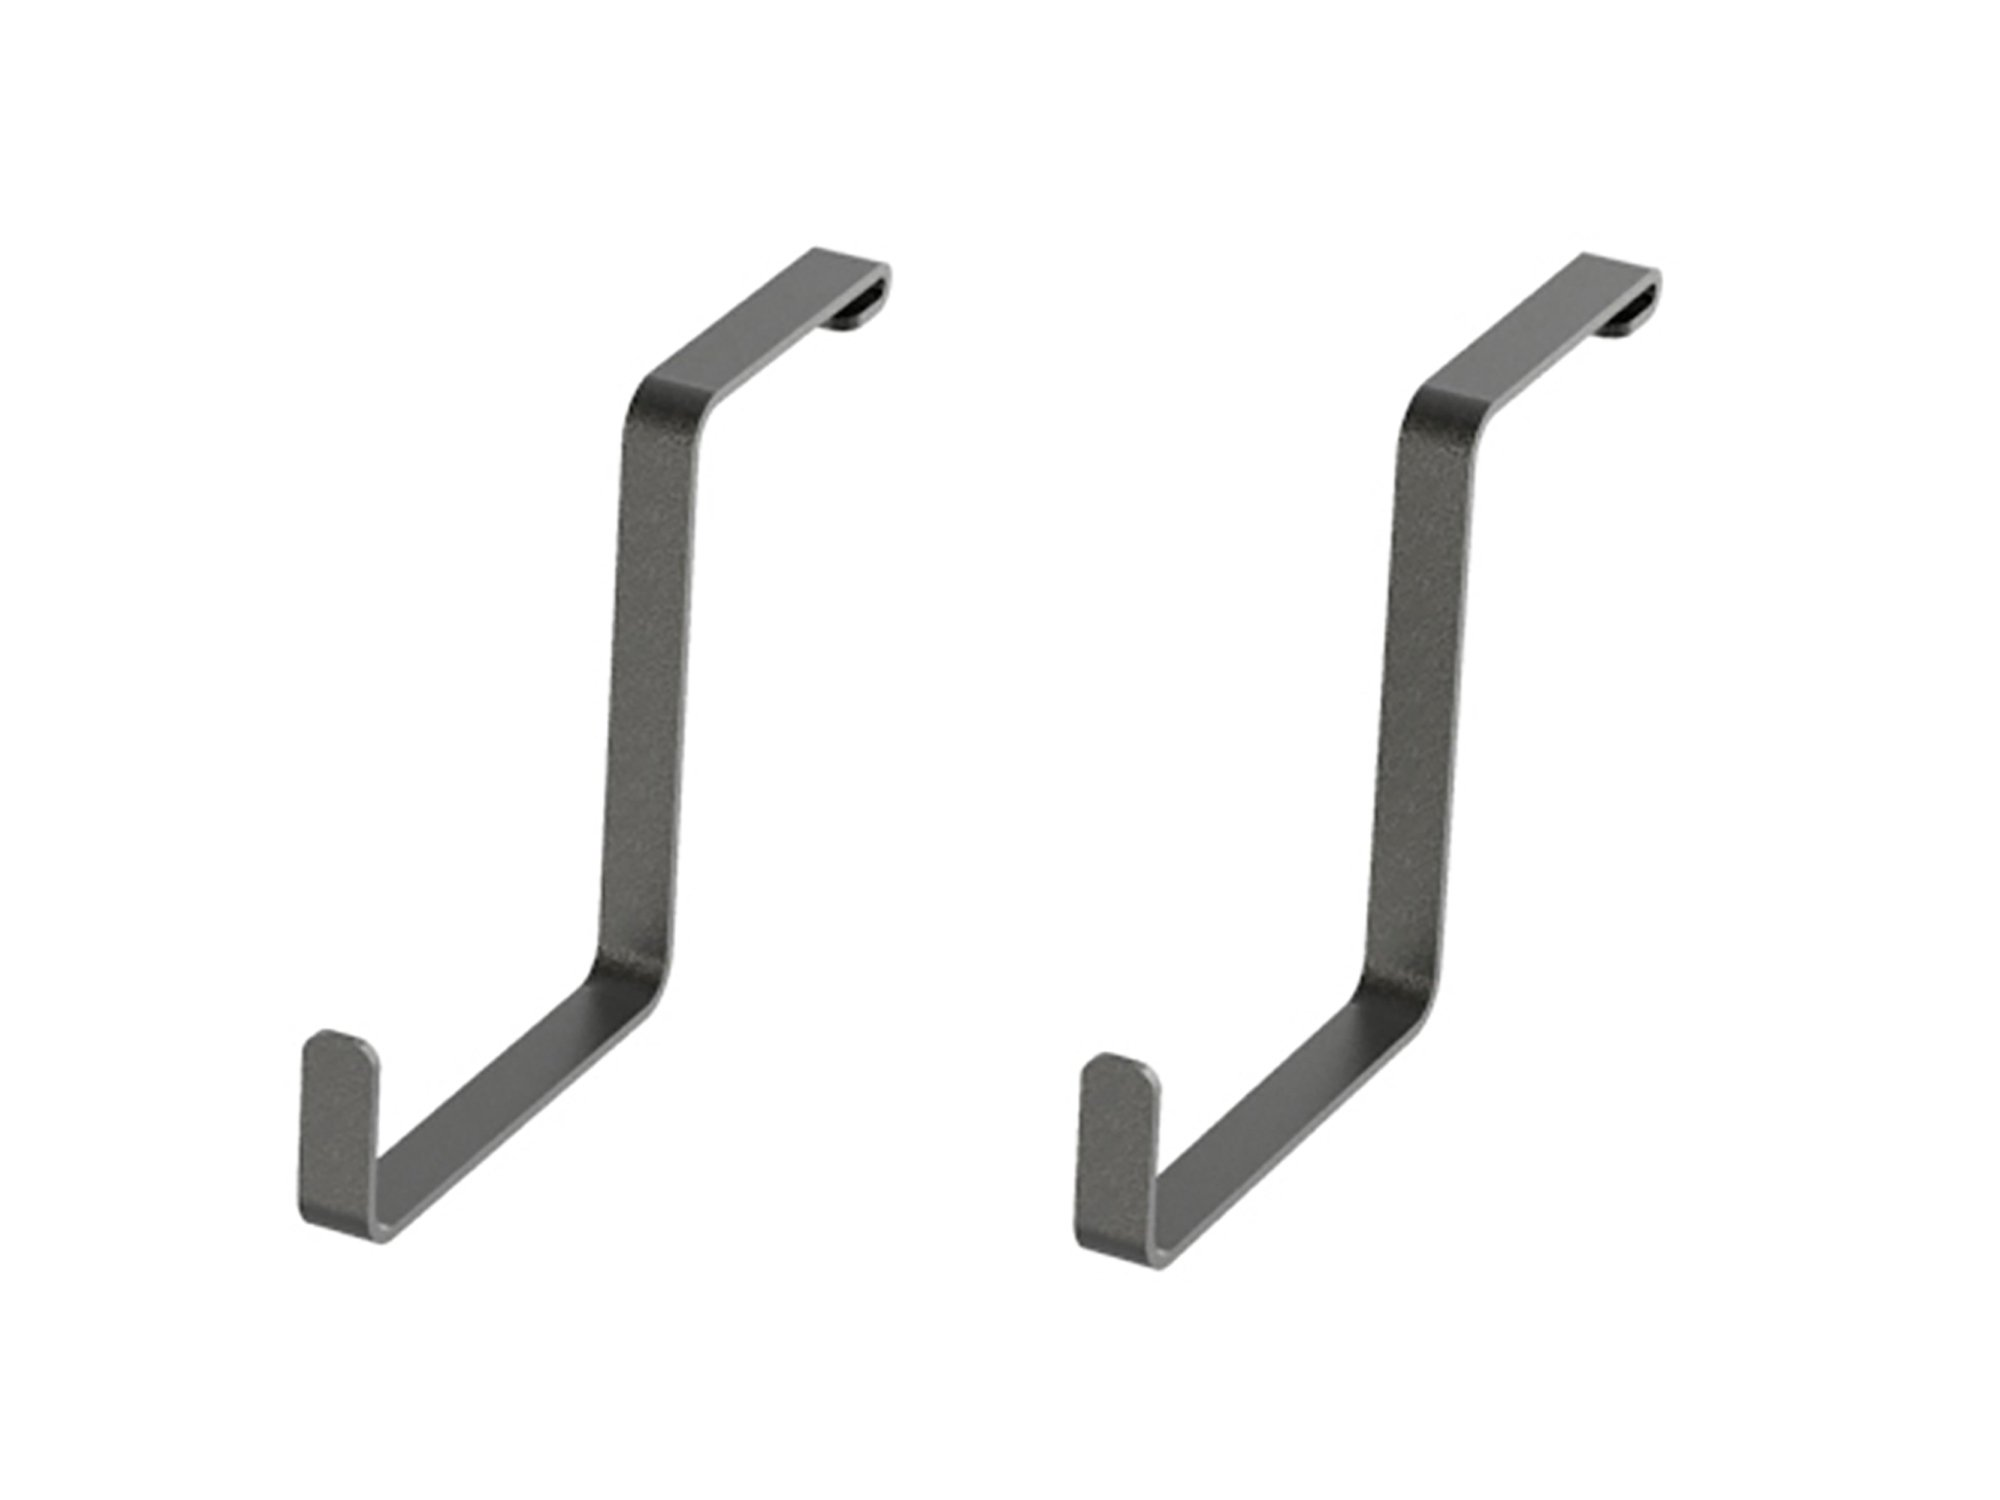 NewAge Products 40304 Accessories 2 Pack 4x8' Overhead Hooks, Garage Overheads, Gray